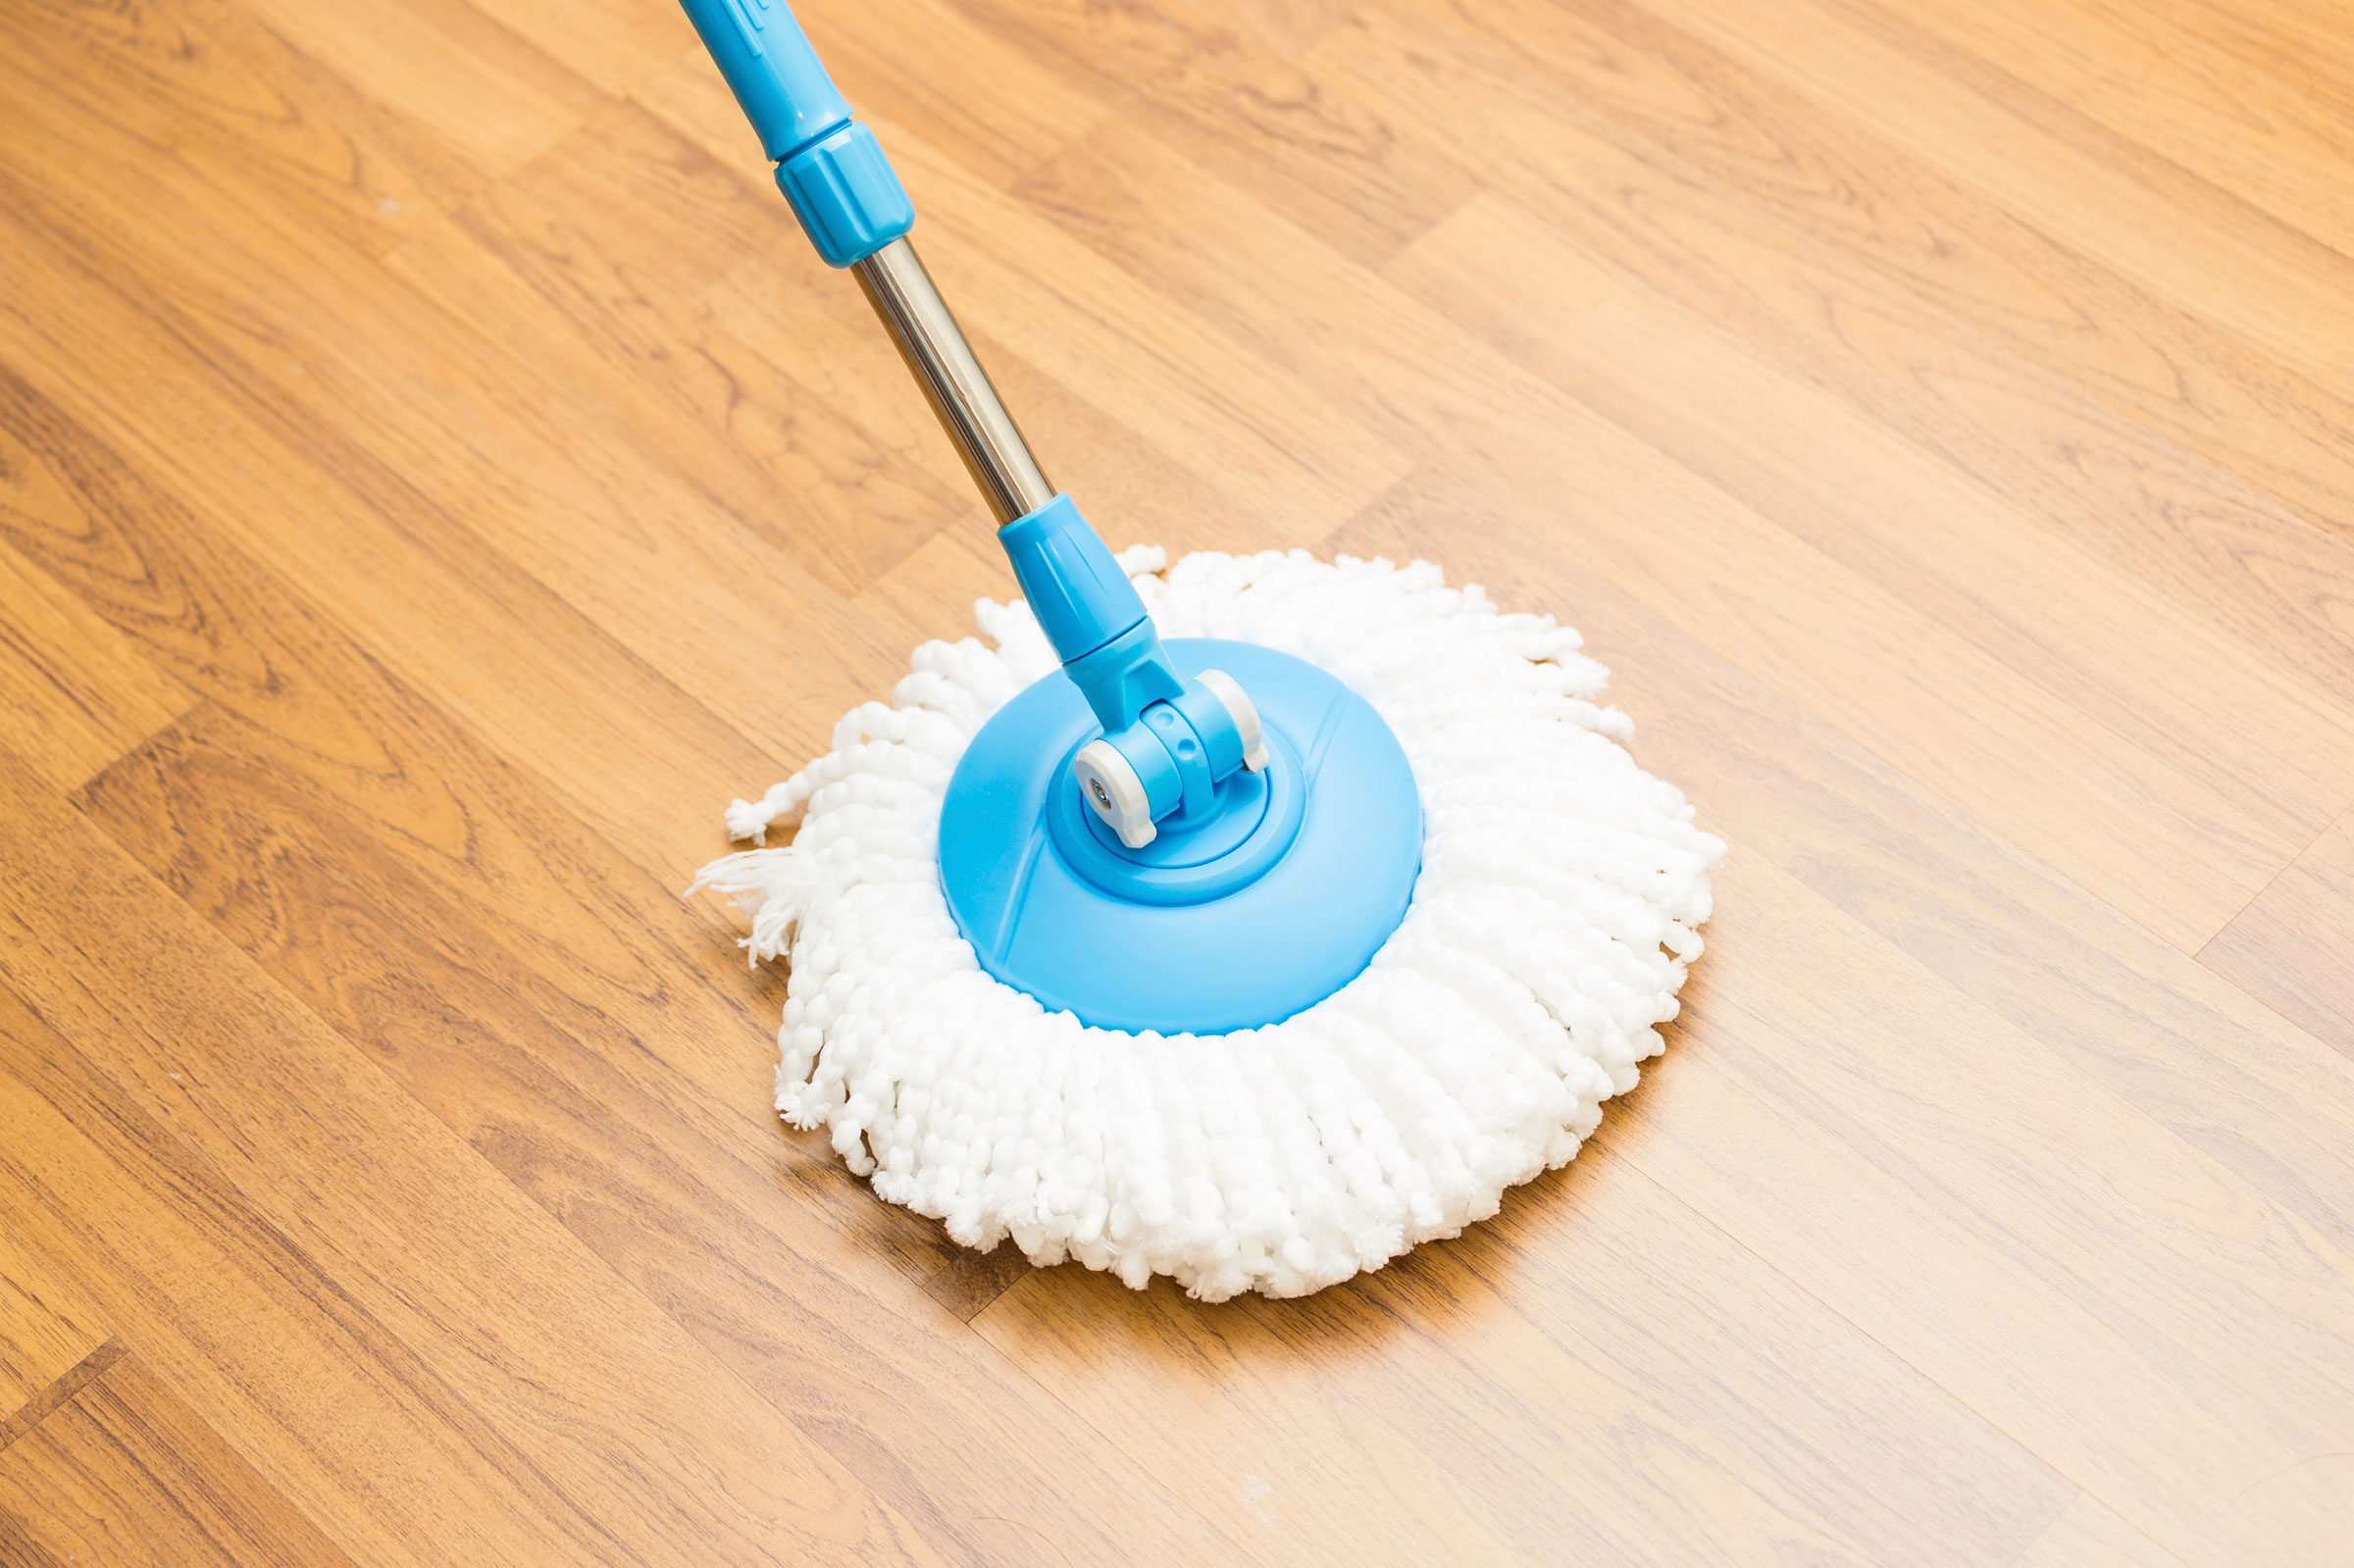 Maintaining luxury vinyl flooring ferma flooring clean vinyl floors dailygadgetfo Choice Image